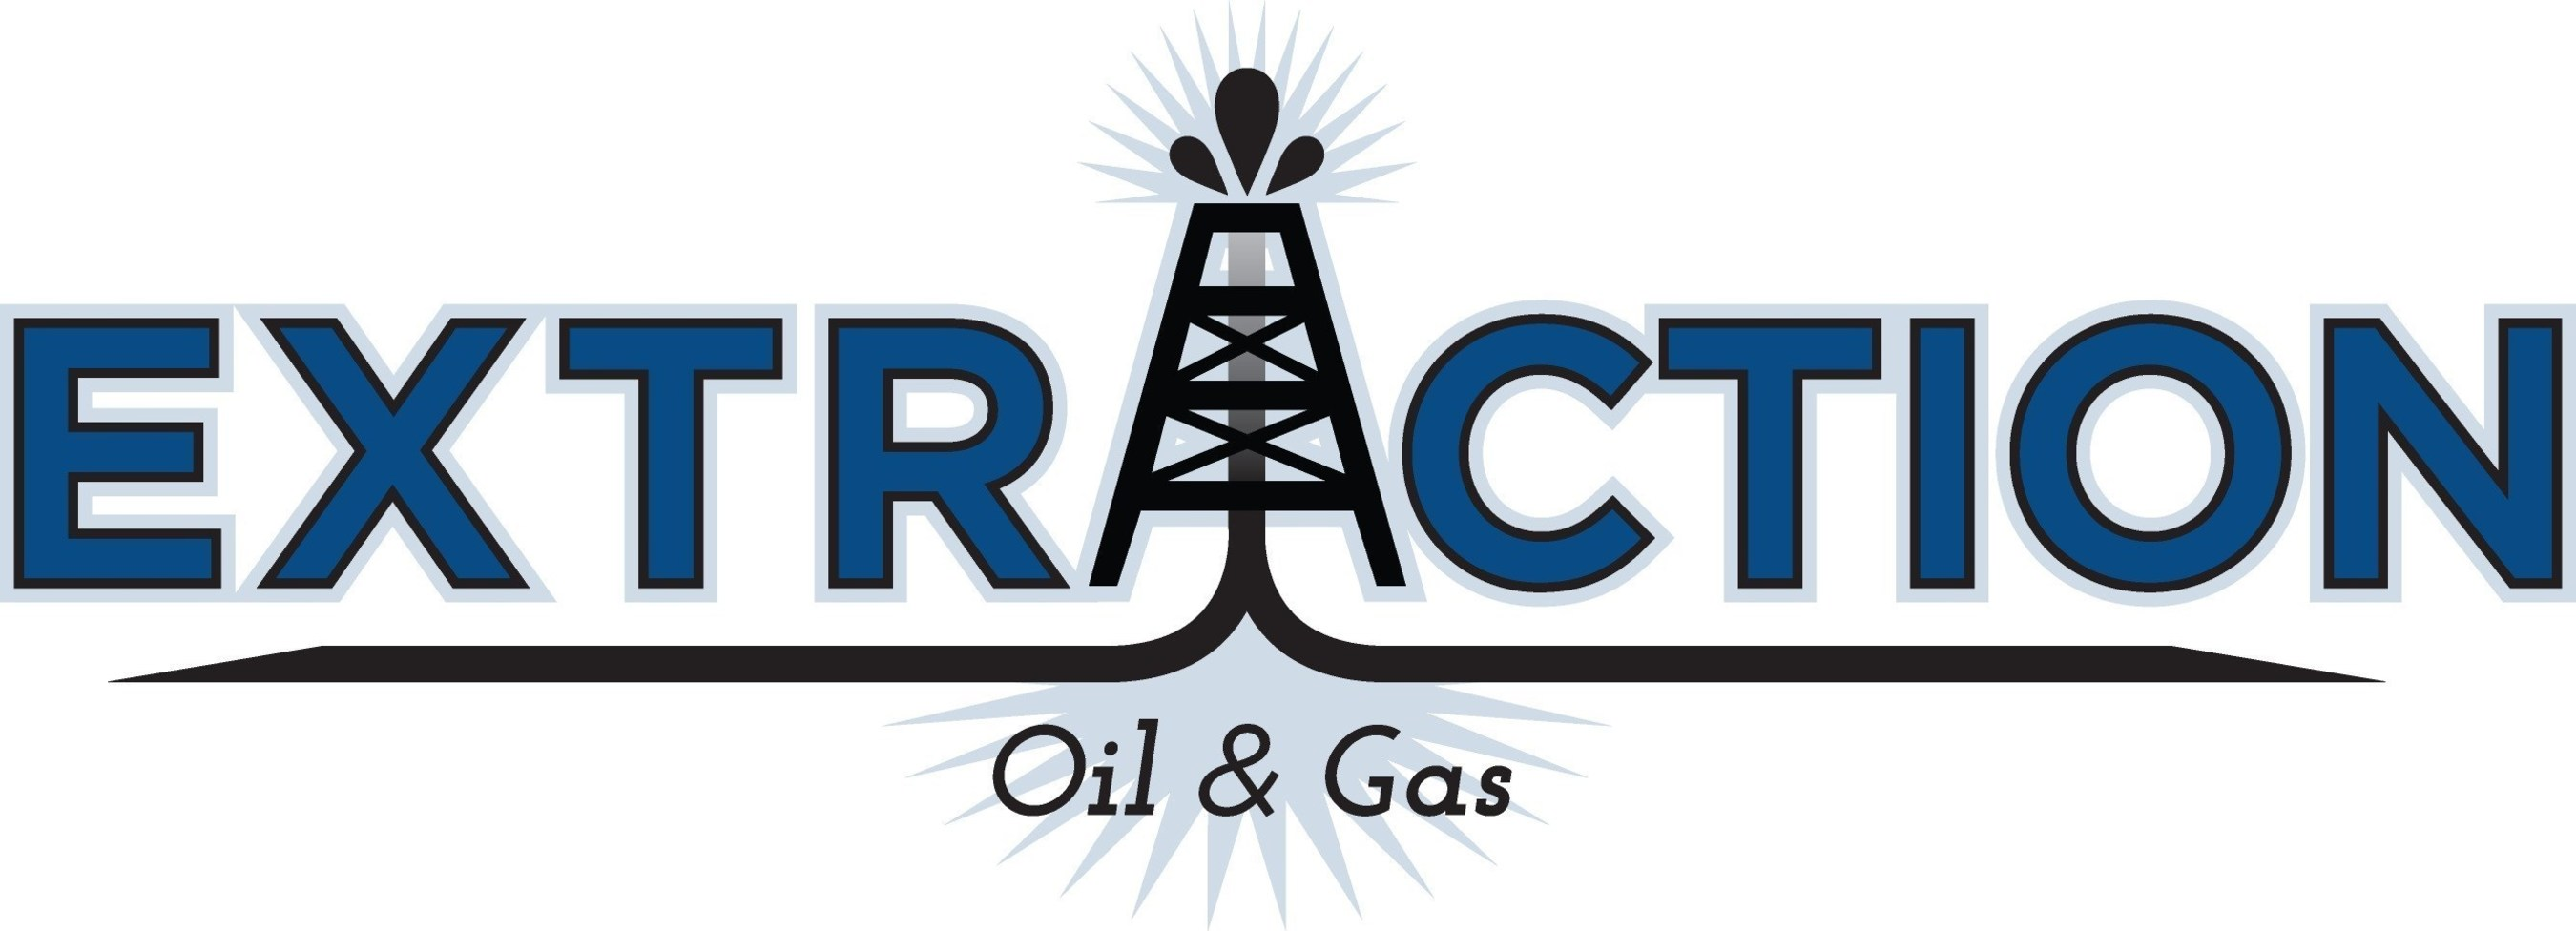 Extraction Oil Gas Inc Announces Launch Of Initial Public Offering